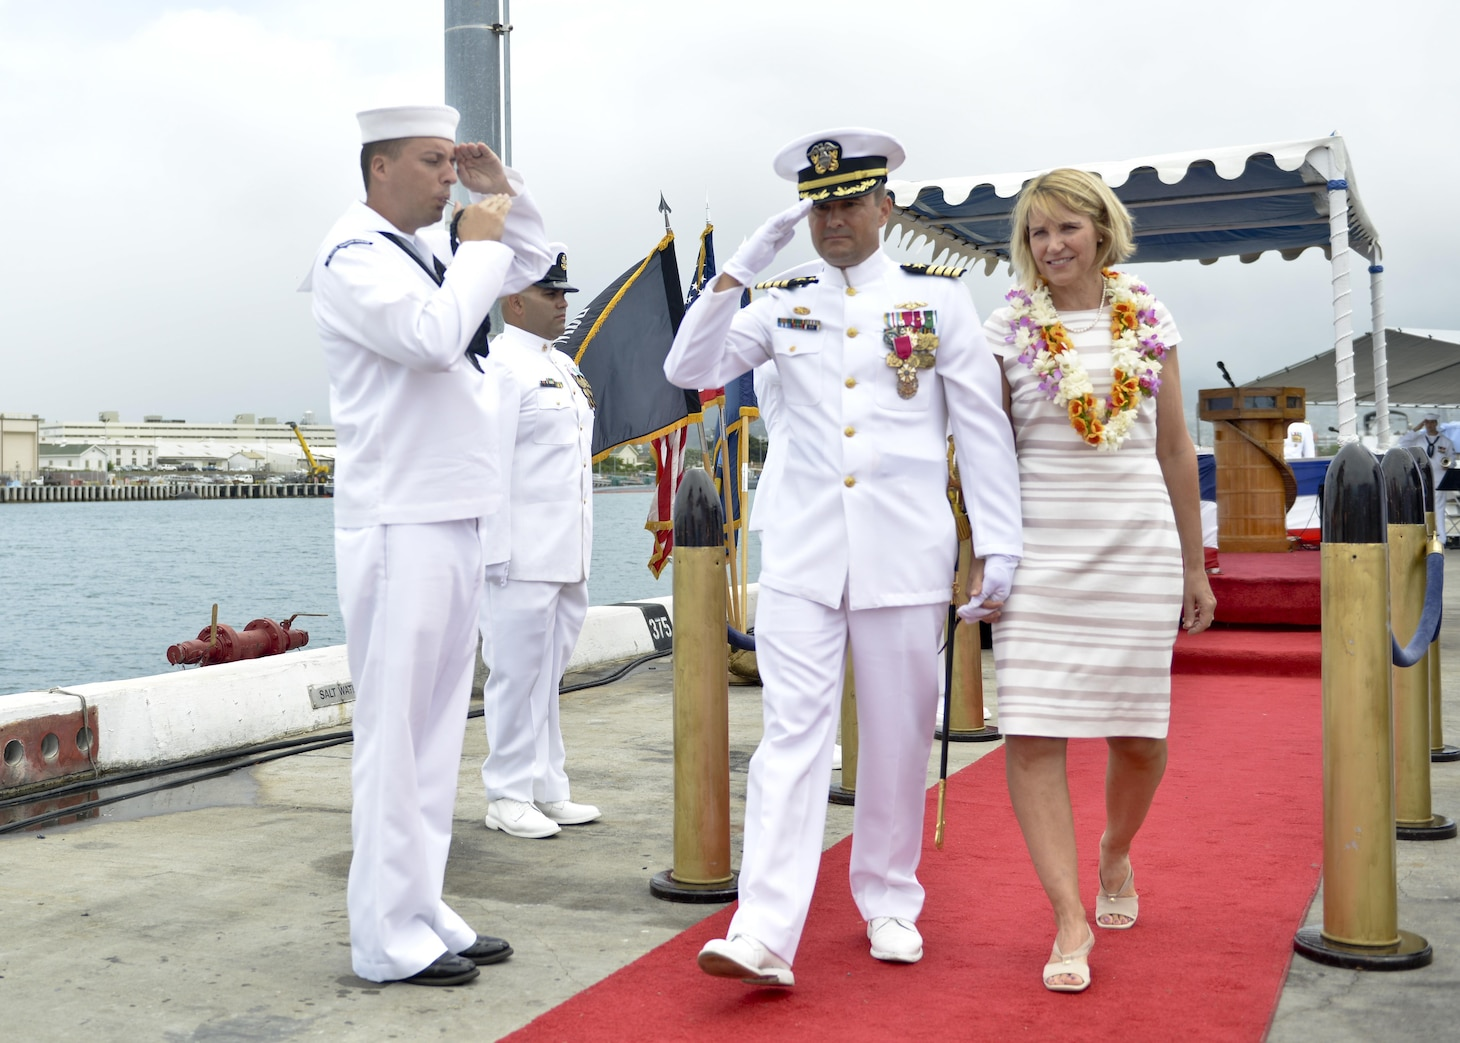 160617-N-LY160-312